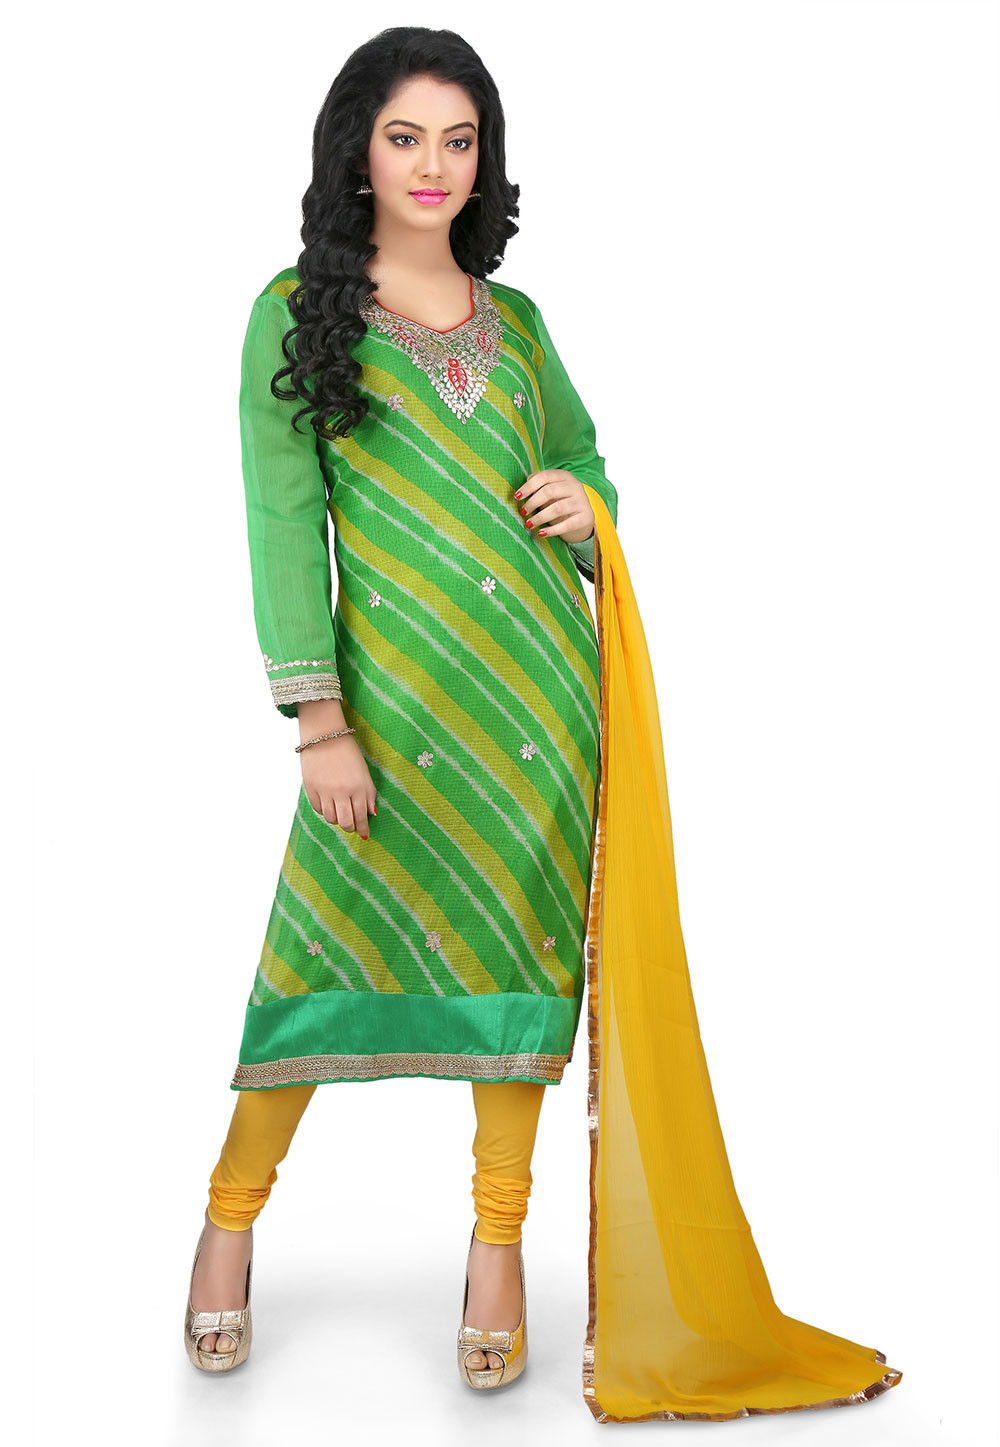 Leheriya Pure Kota Silk Straight Cut Suit in Green